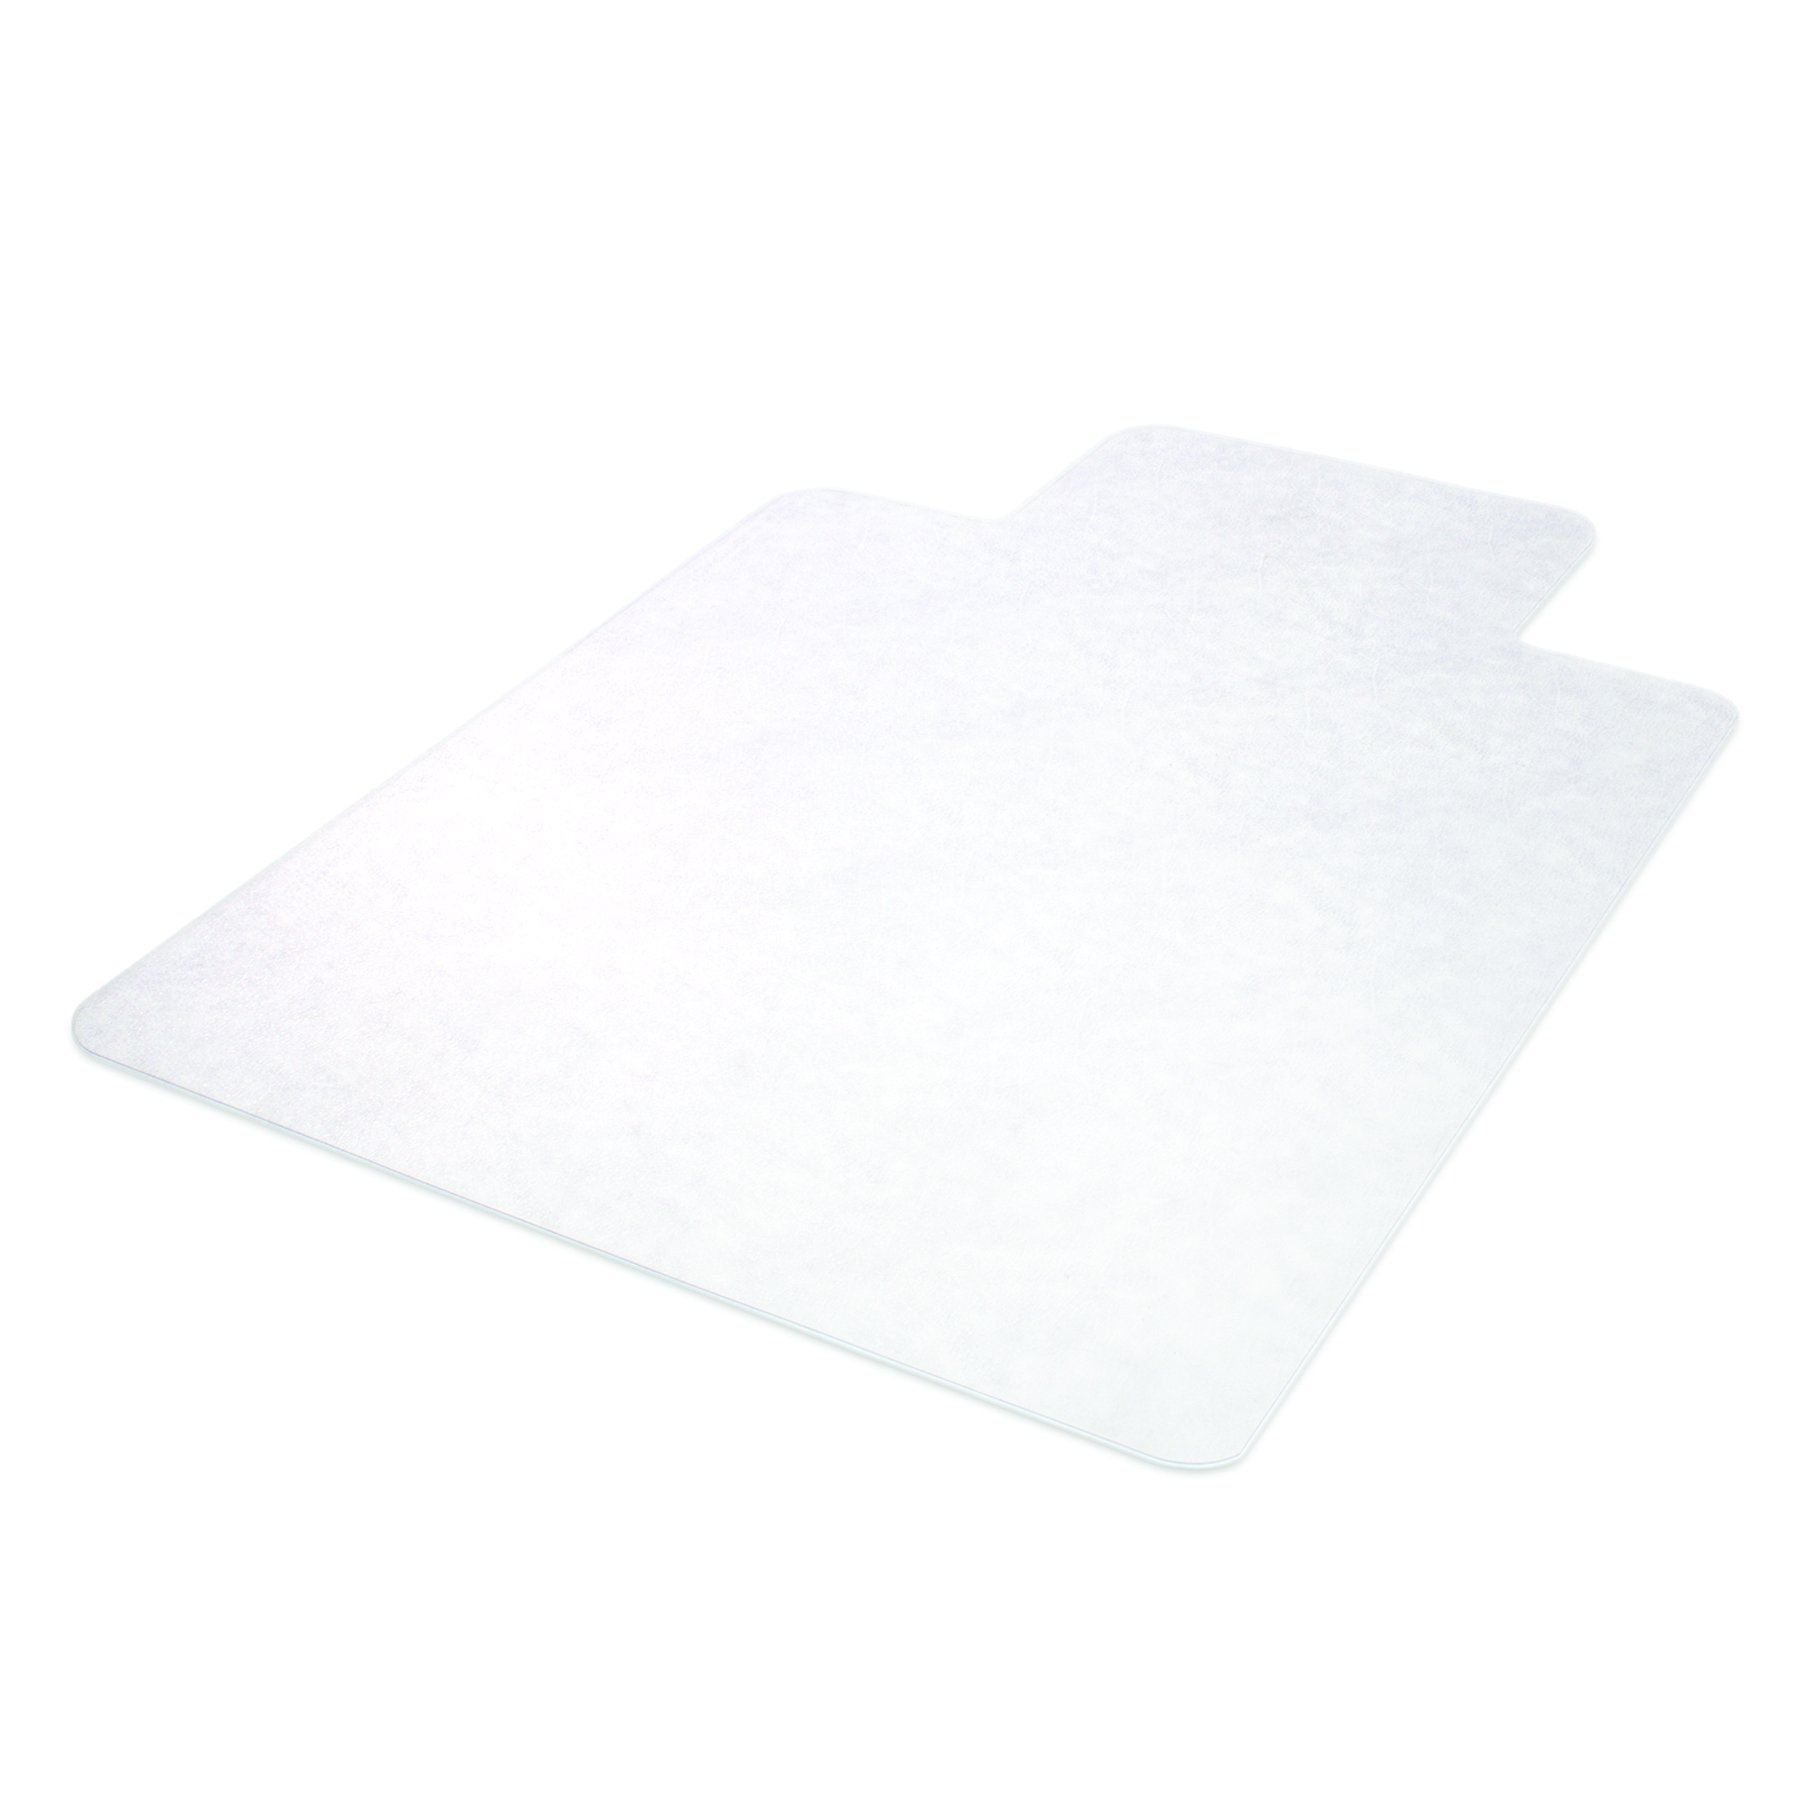 Deflecto SuperMat Clear Chair Mat, Hard Floor Use, Rectangle With Lip, Beveled Edge, 46 x 60 Inches (CM24433F)